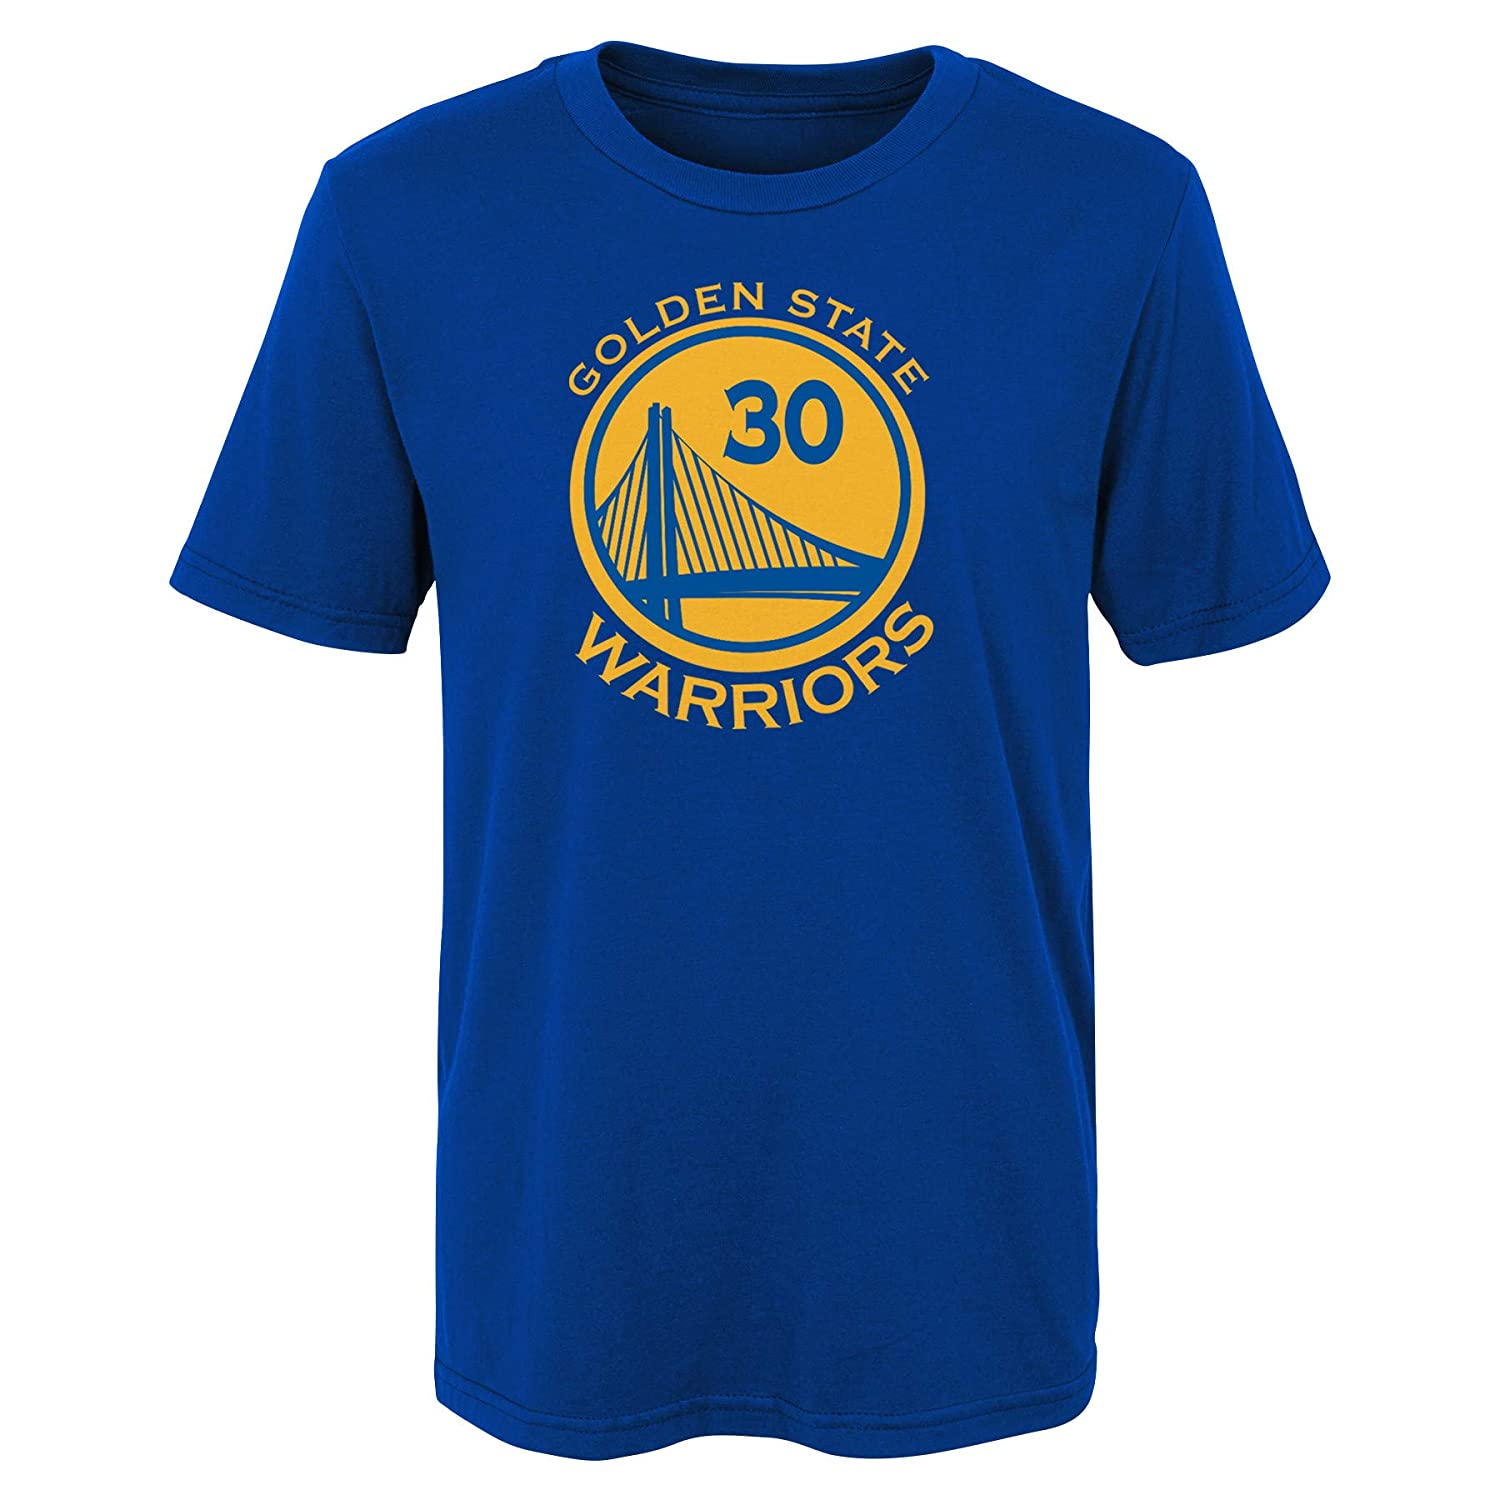 NBA Golden State Warriors-Stephen Curry, Camisa de Deporte para Niños: Amazon.es: Ropa y accesorios